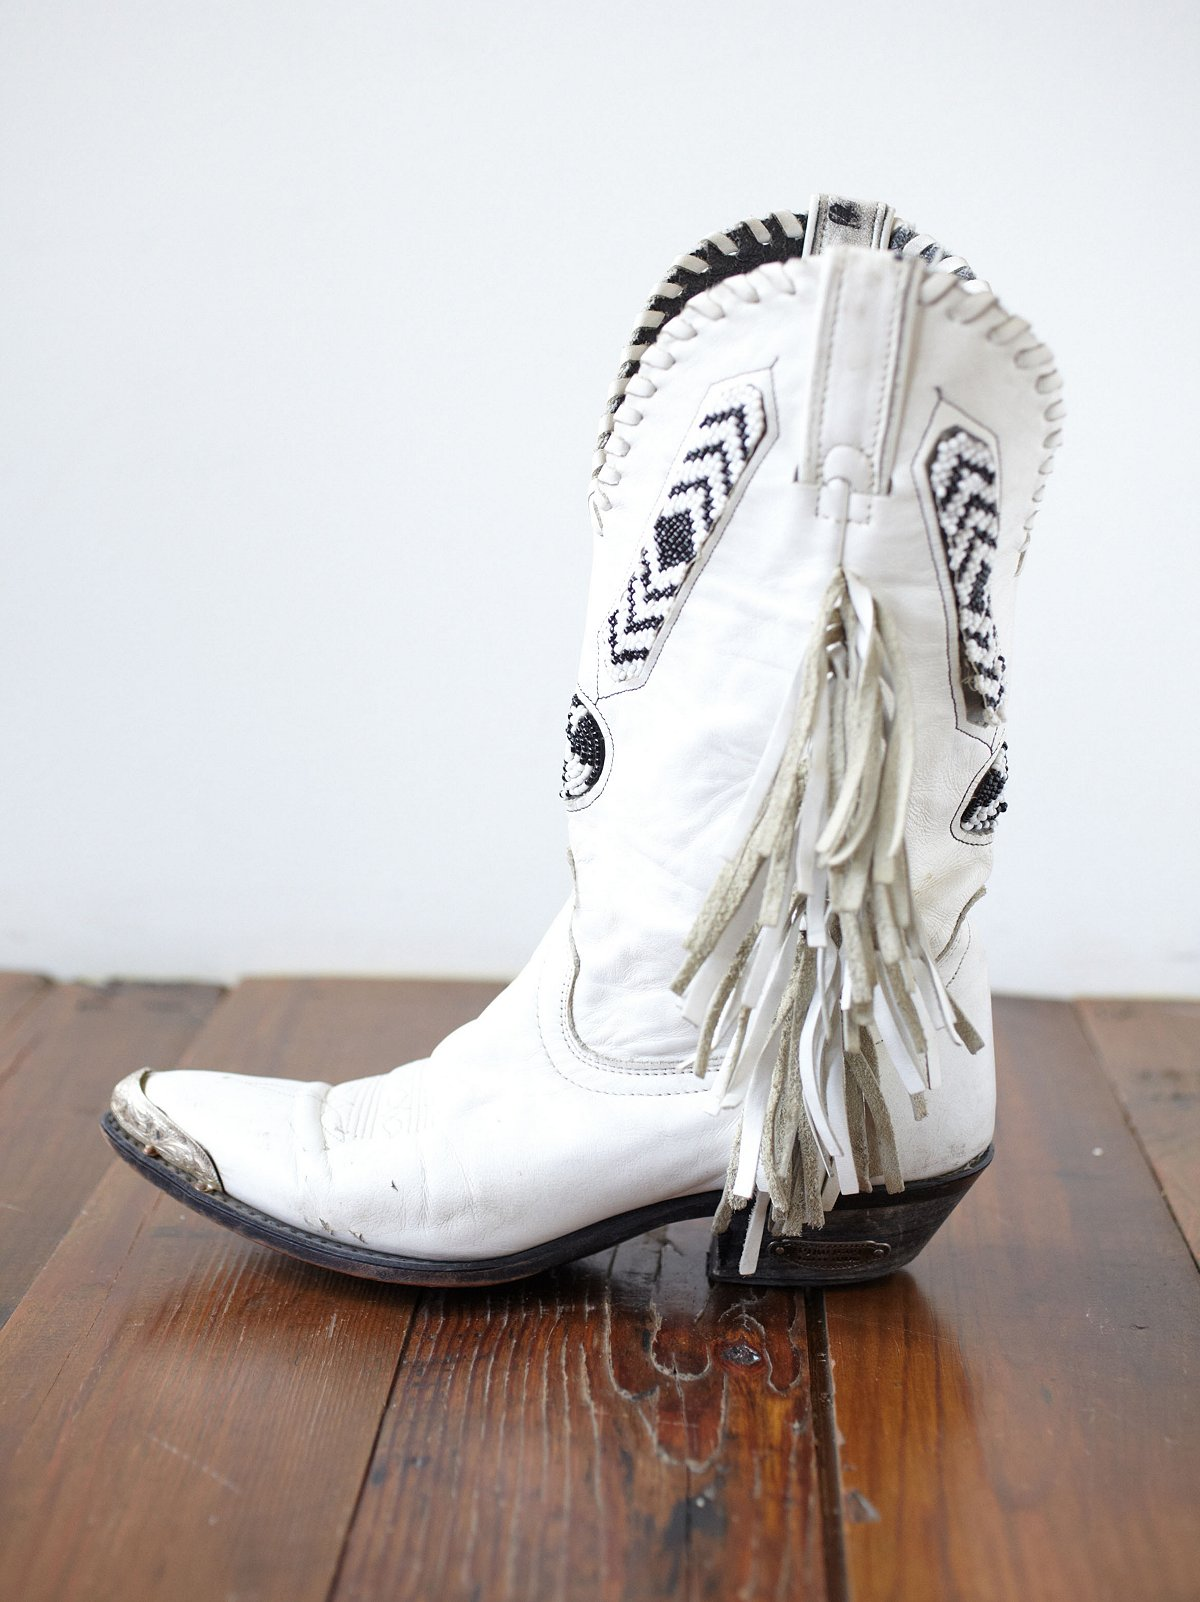 Vintage Steeltip Beaded Boots